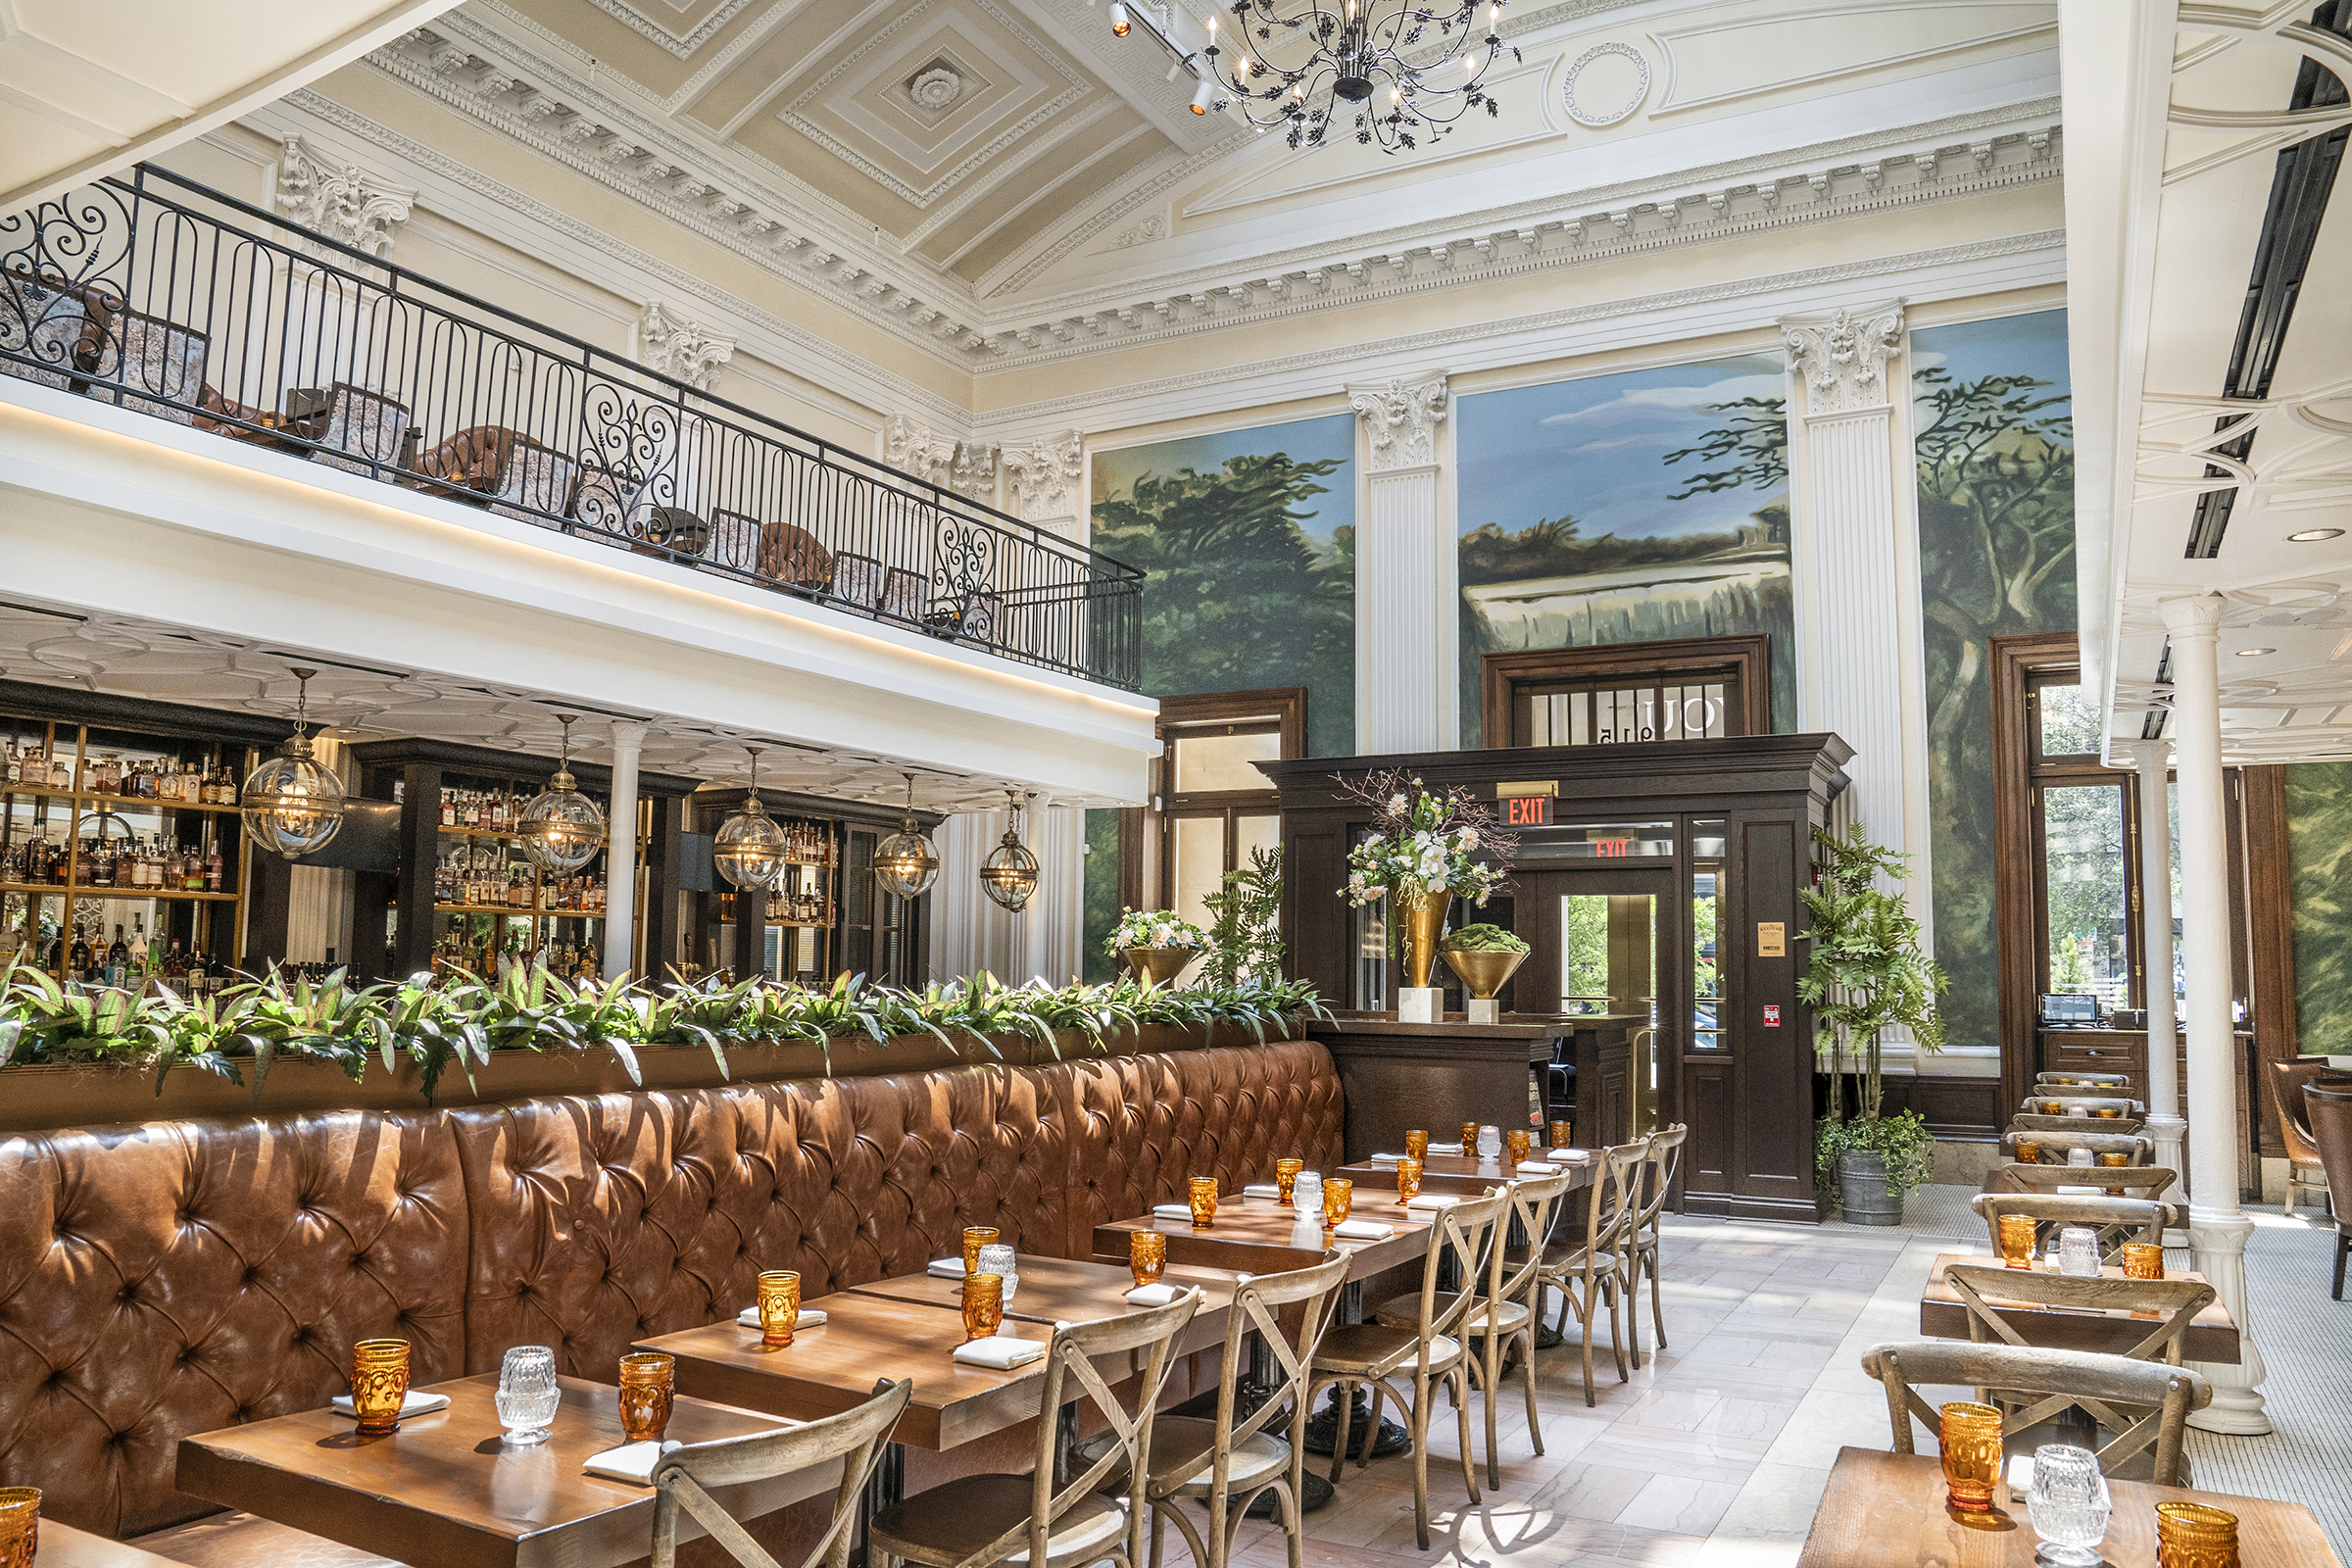 The airy dining room at Succotash Prime